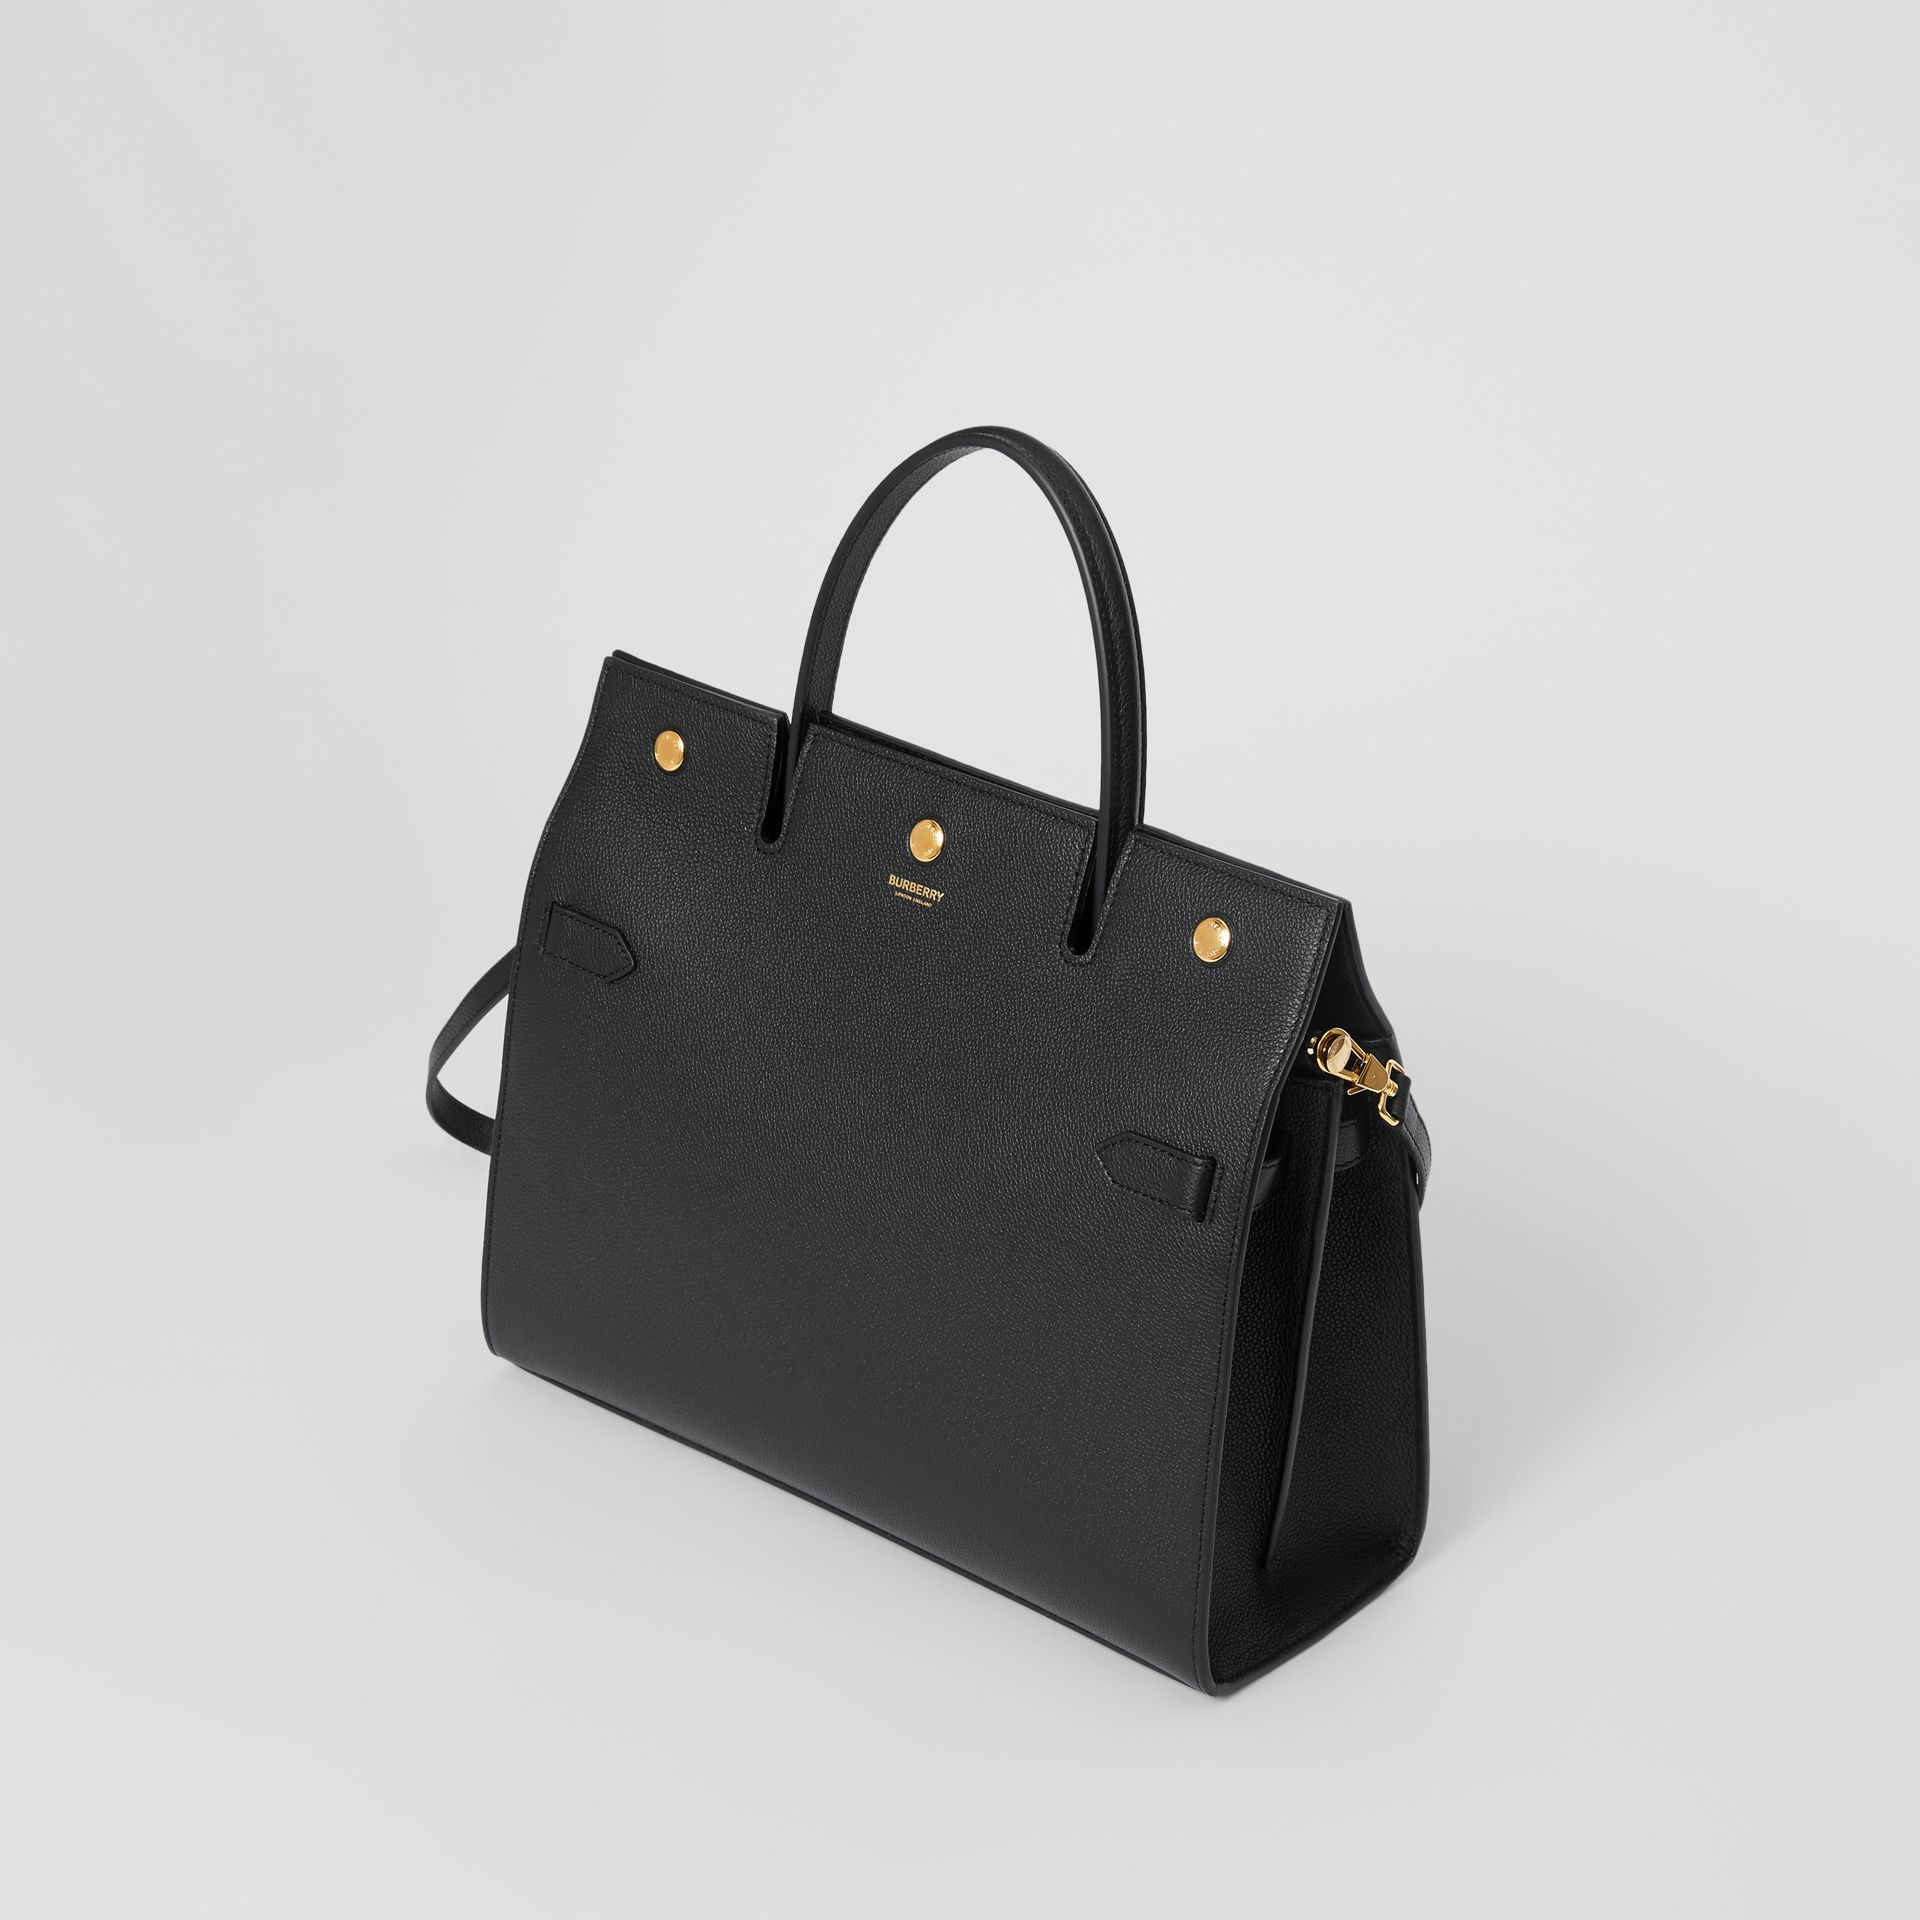 Medium Leather Title Bag in Black - Women | Burberry United Kingdom - gallery image 3